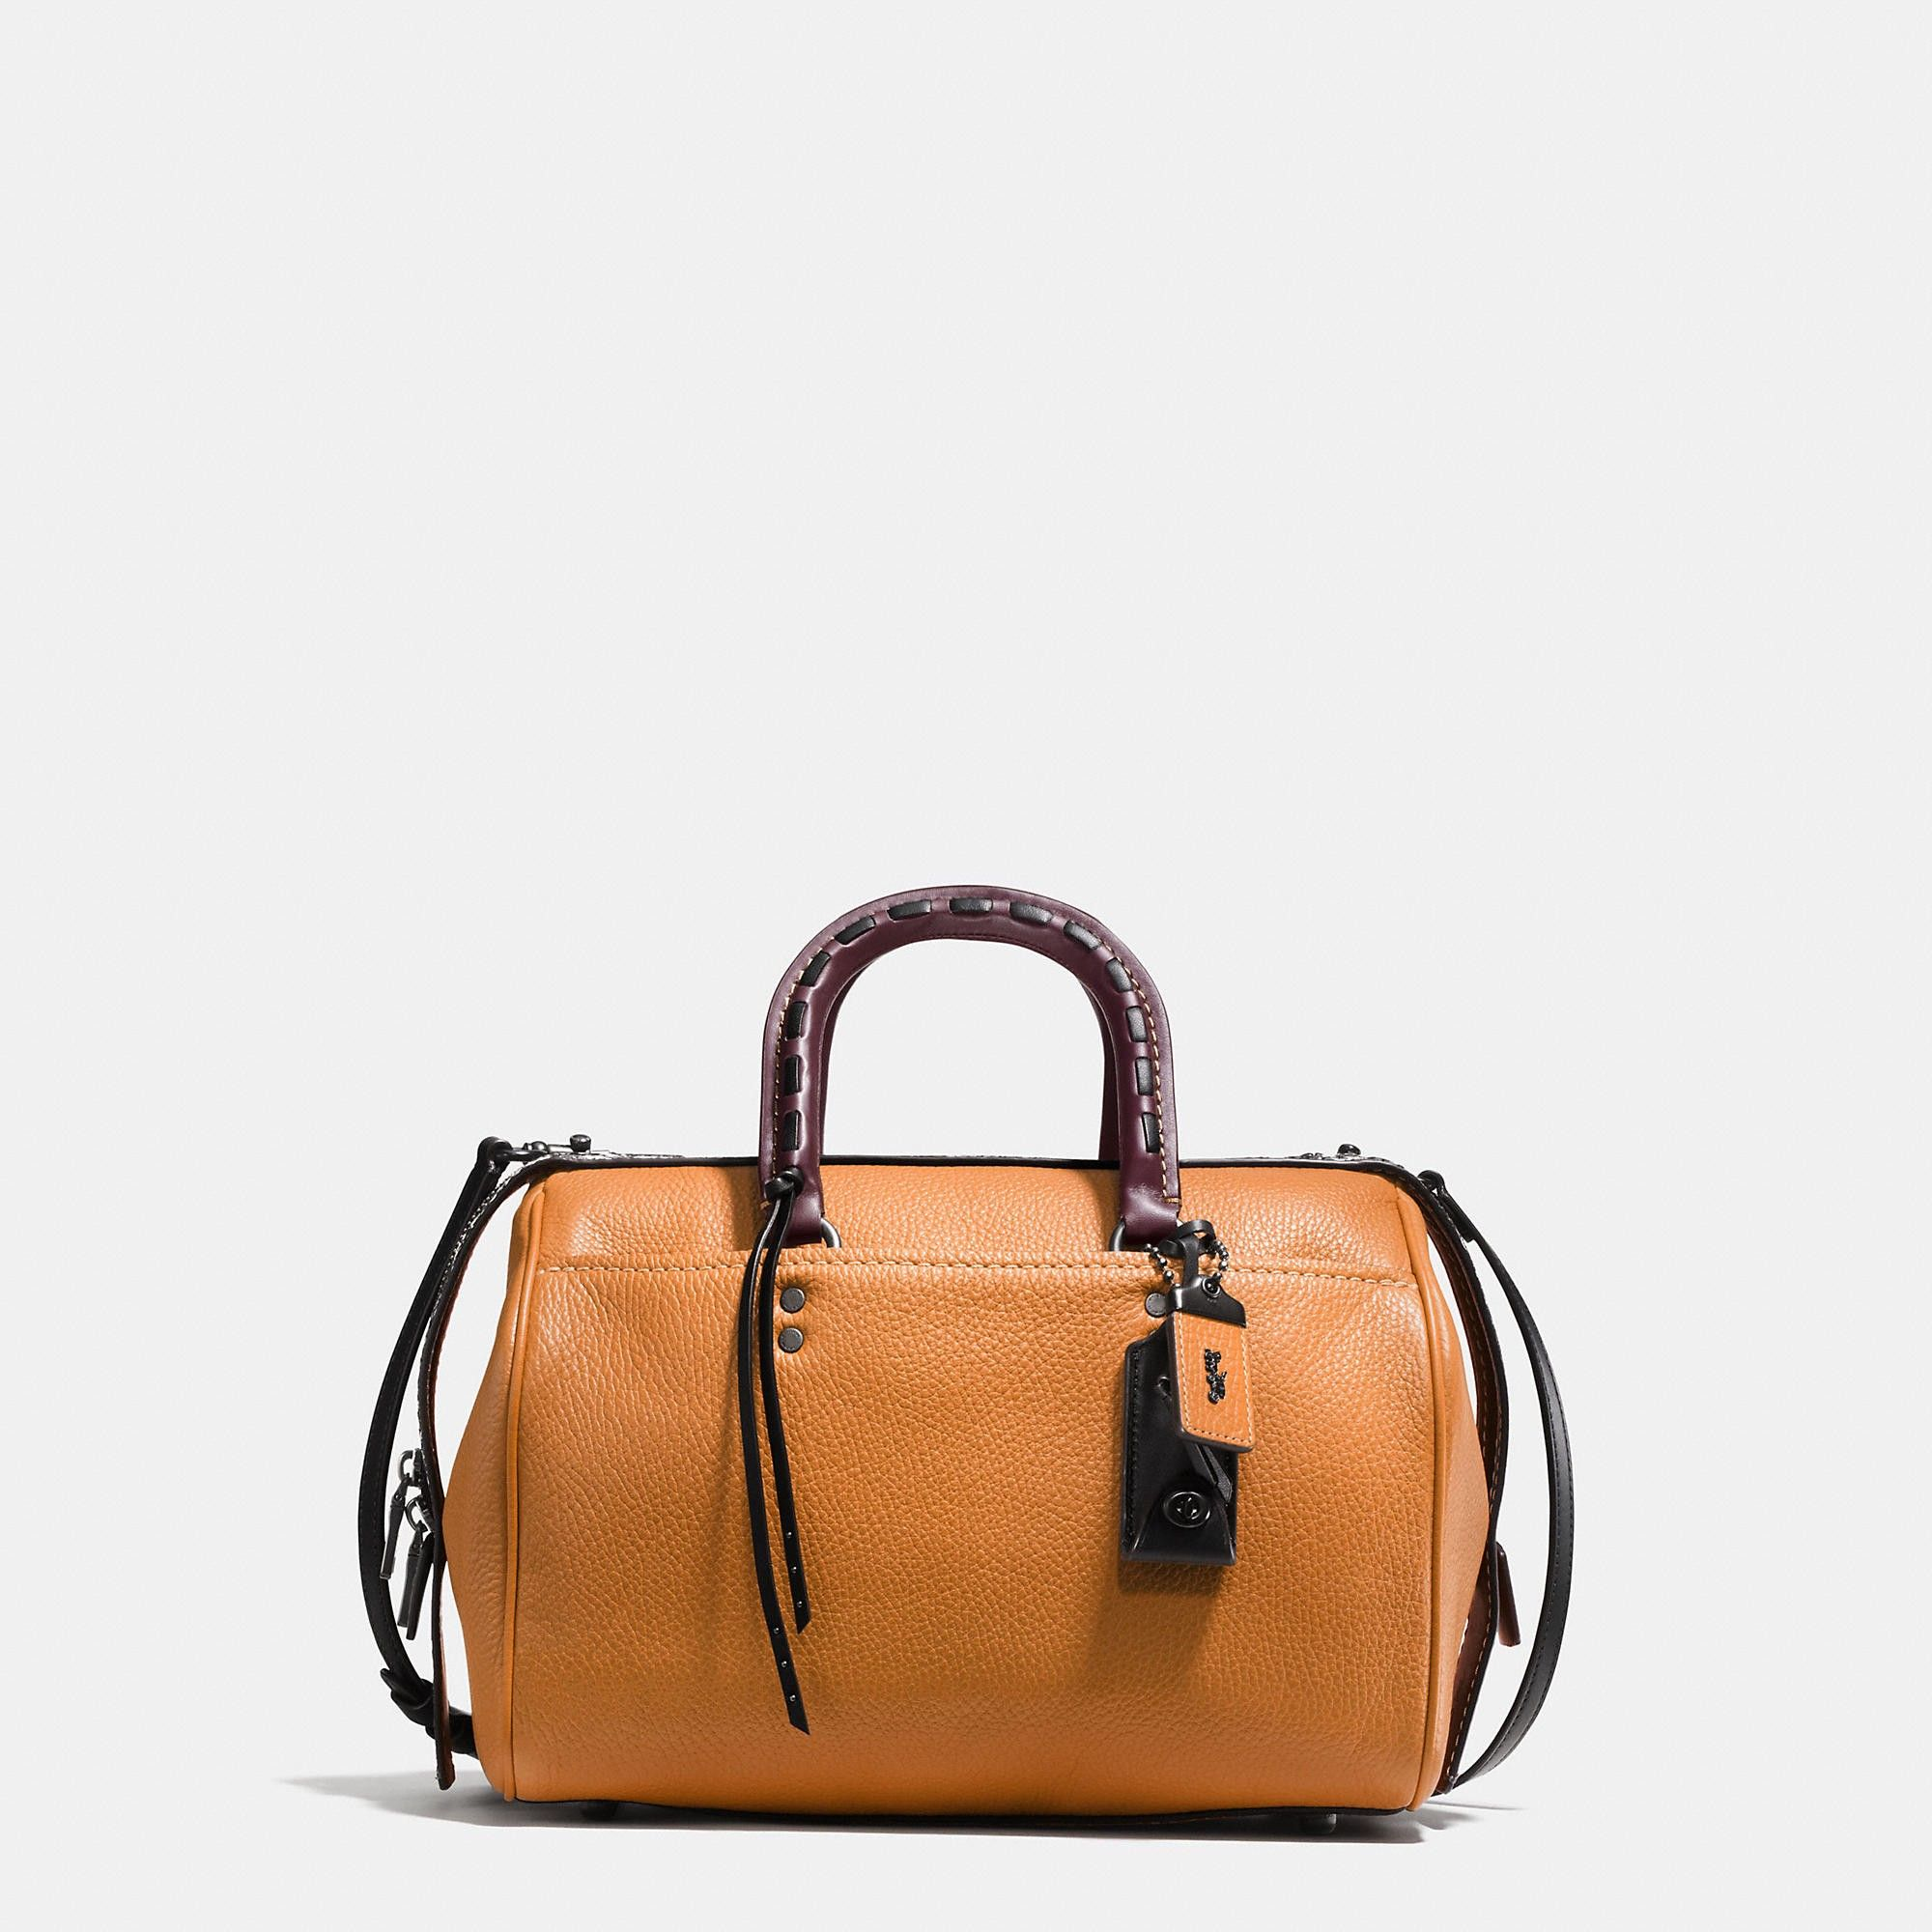 4b8a3ca609c COACH Rogue Satchel In Glovetanned Pebble Leather With Colorblock Snake  Detail.  coach  bags  shoulder bags  hand bags  lining  satchel  suede